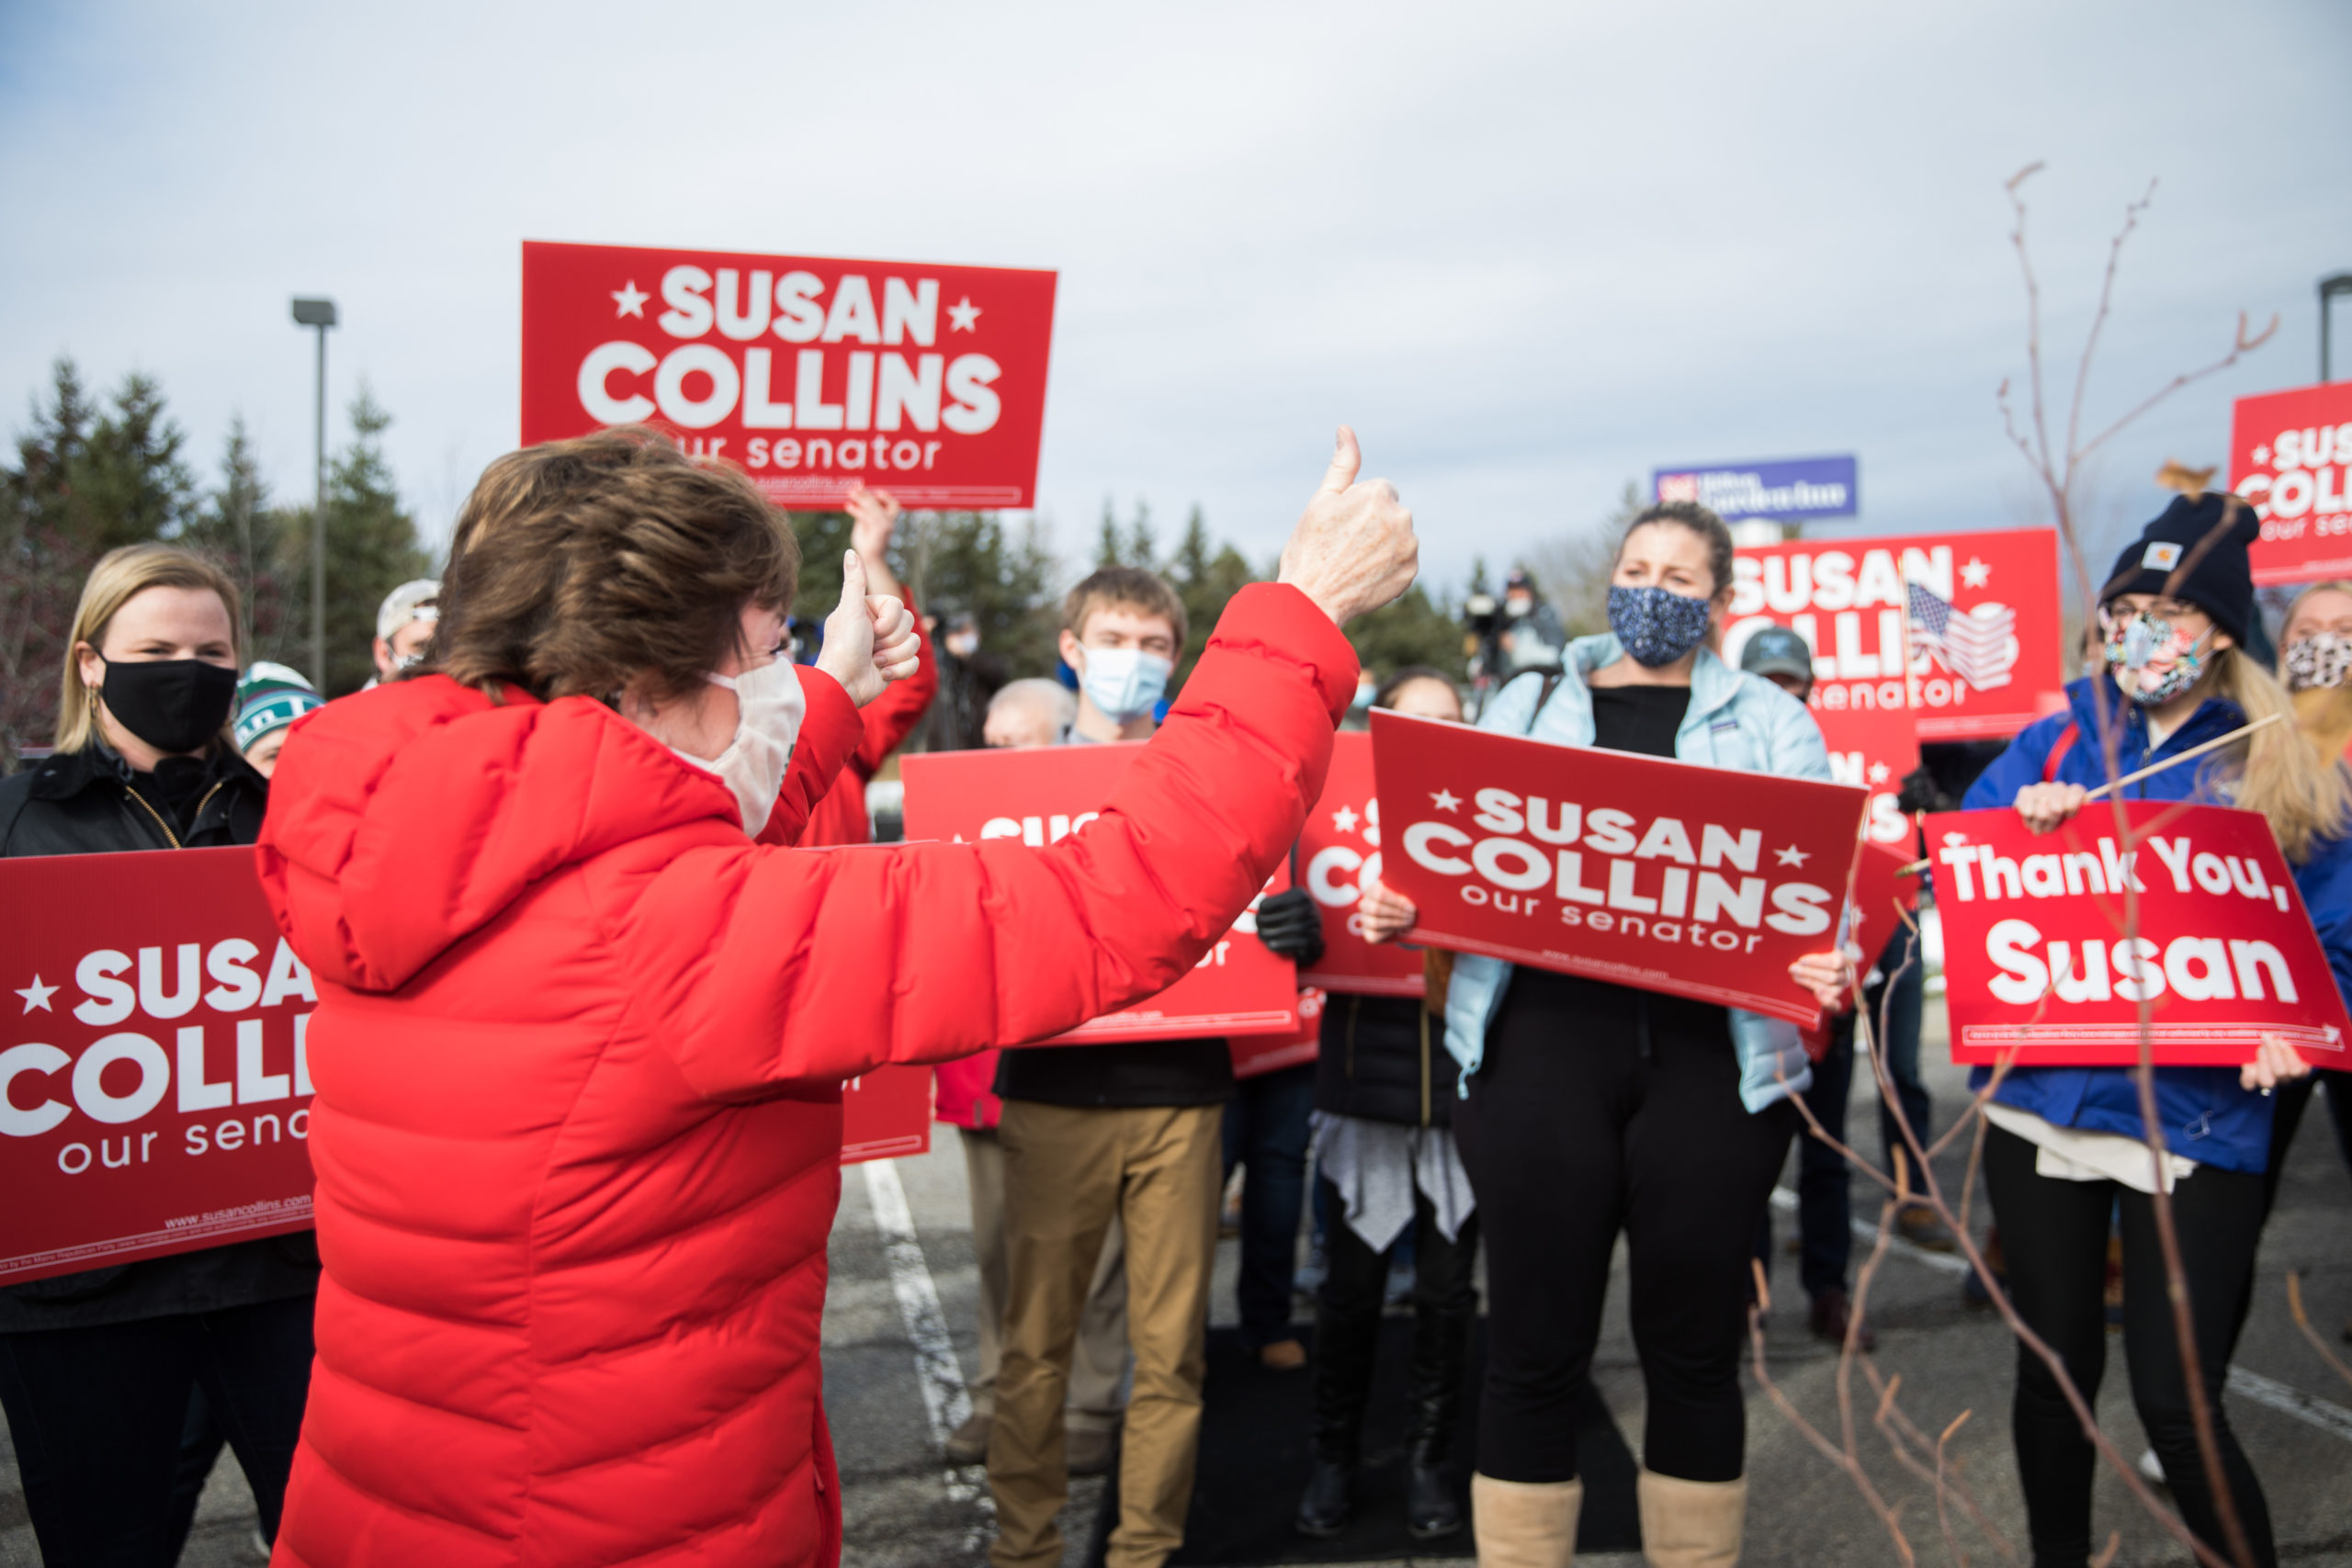 Sen. Susan Collins gives a thumbs up to supporters after announcing her competitor Sara Gideon called to concede on Nov. 4 in Bangor, Maine. (Scott Eisen/Getty Images)